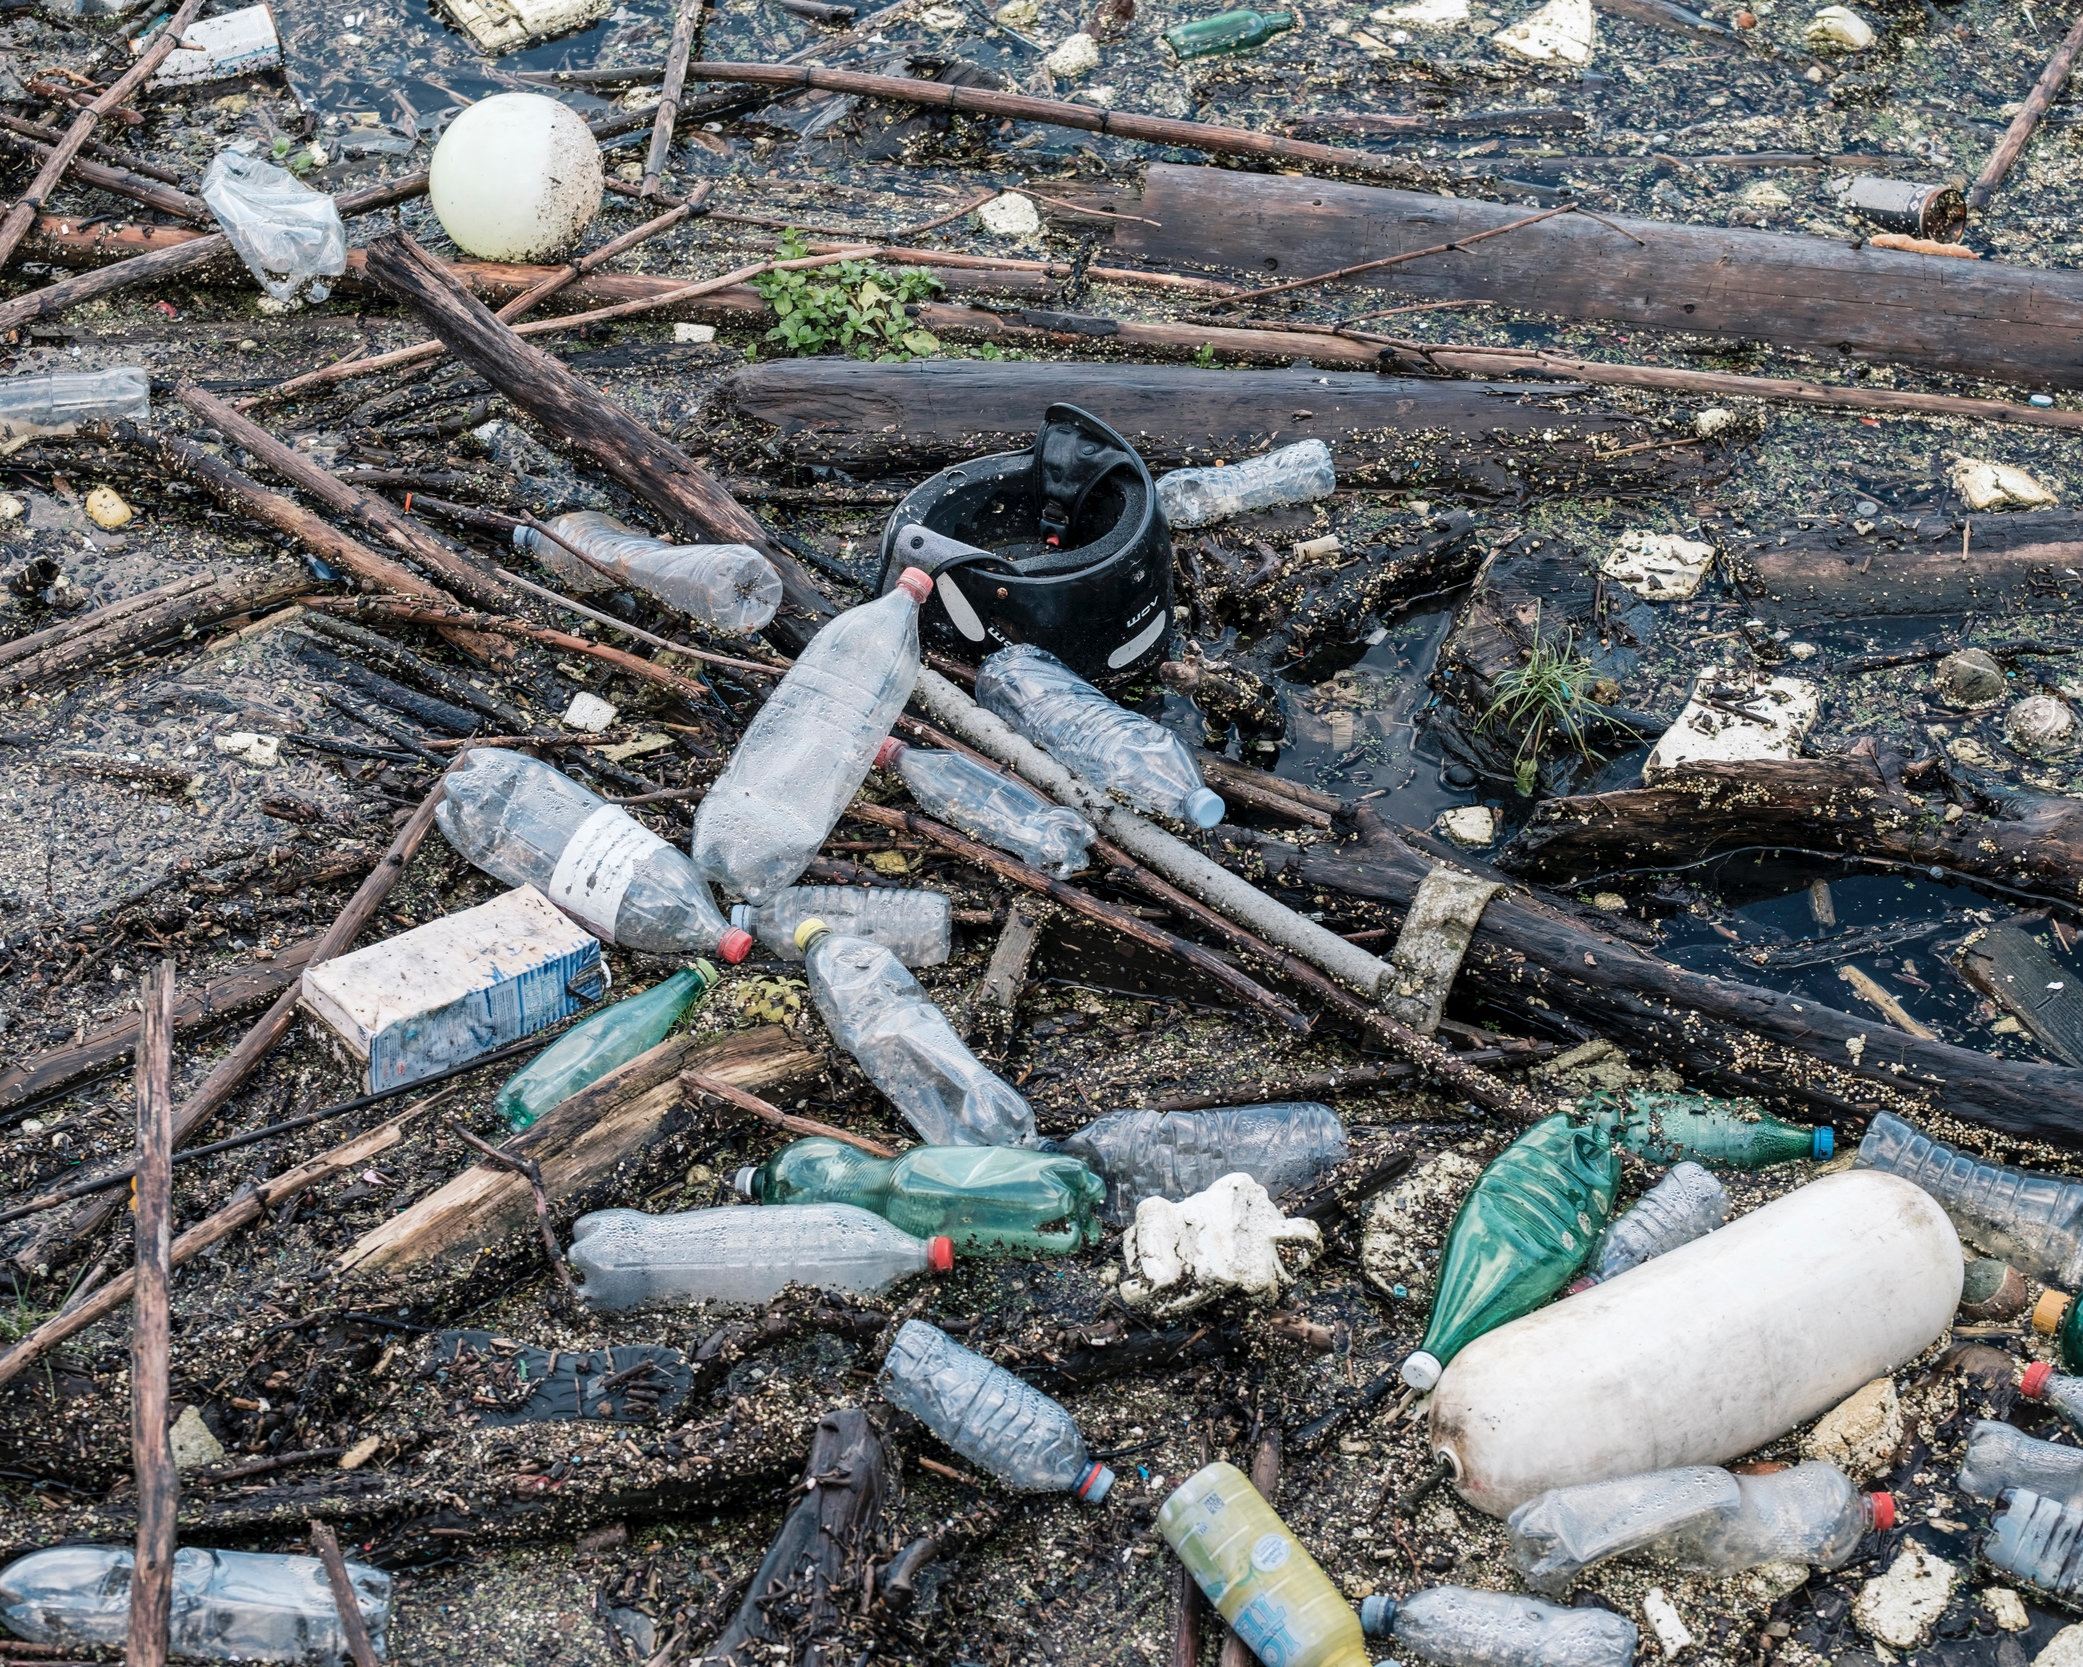 Plastic piles up in the environment - Only about 8 percent of plastic gets recycled. The rest ends up in landfills or becomes 'litter', and a small portion is incinerated.